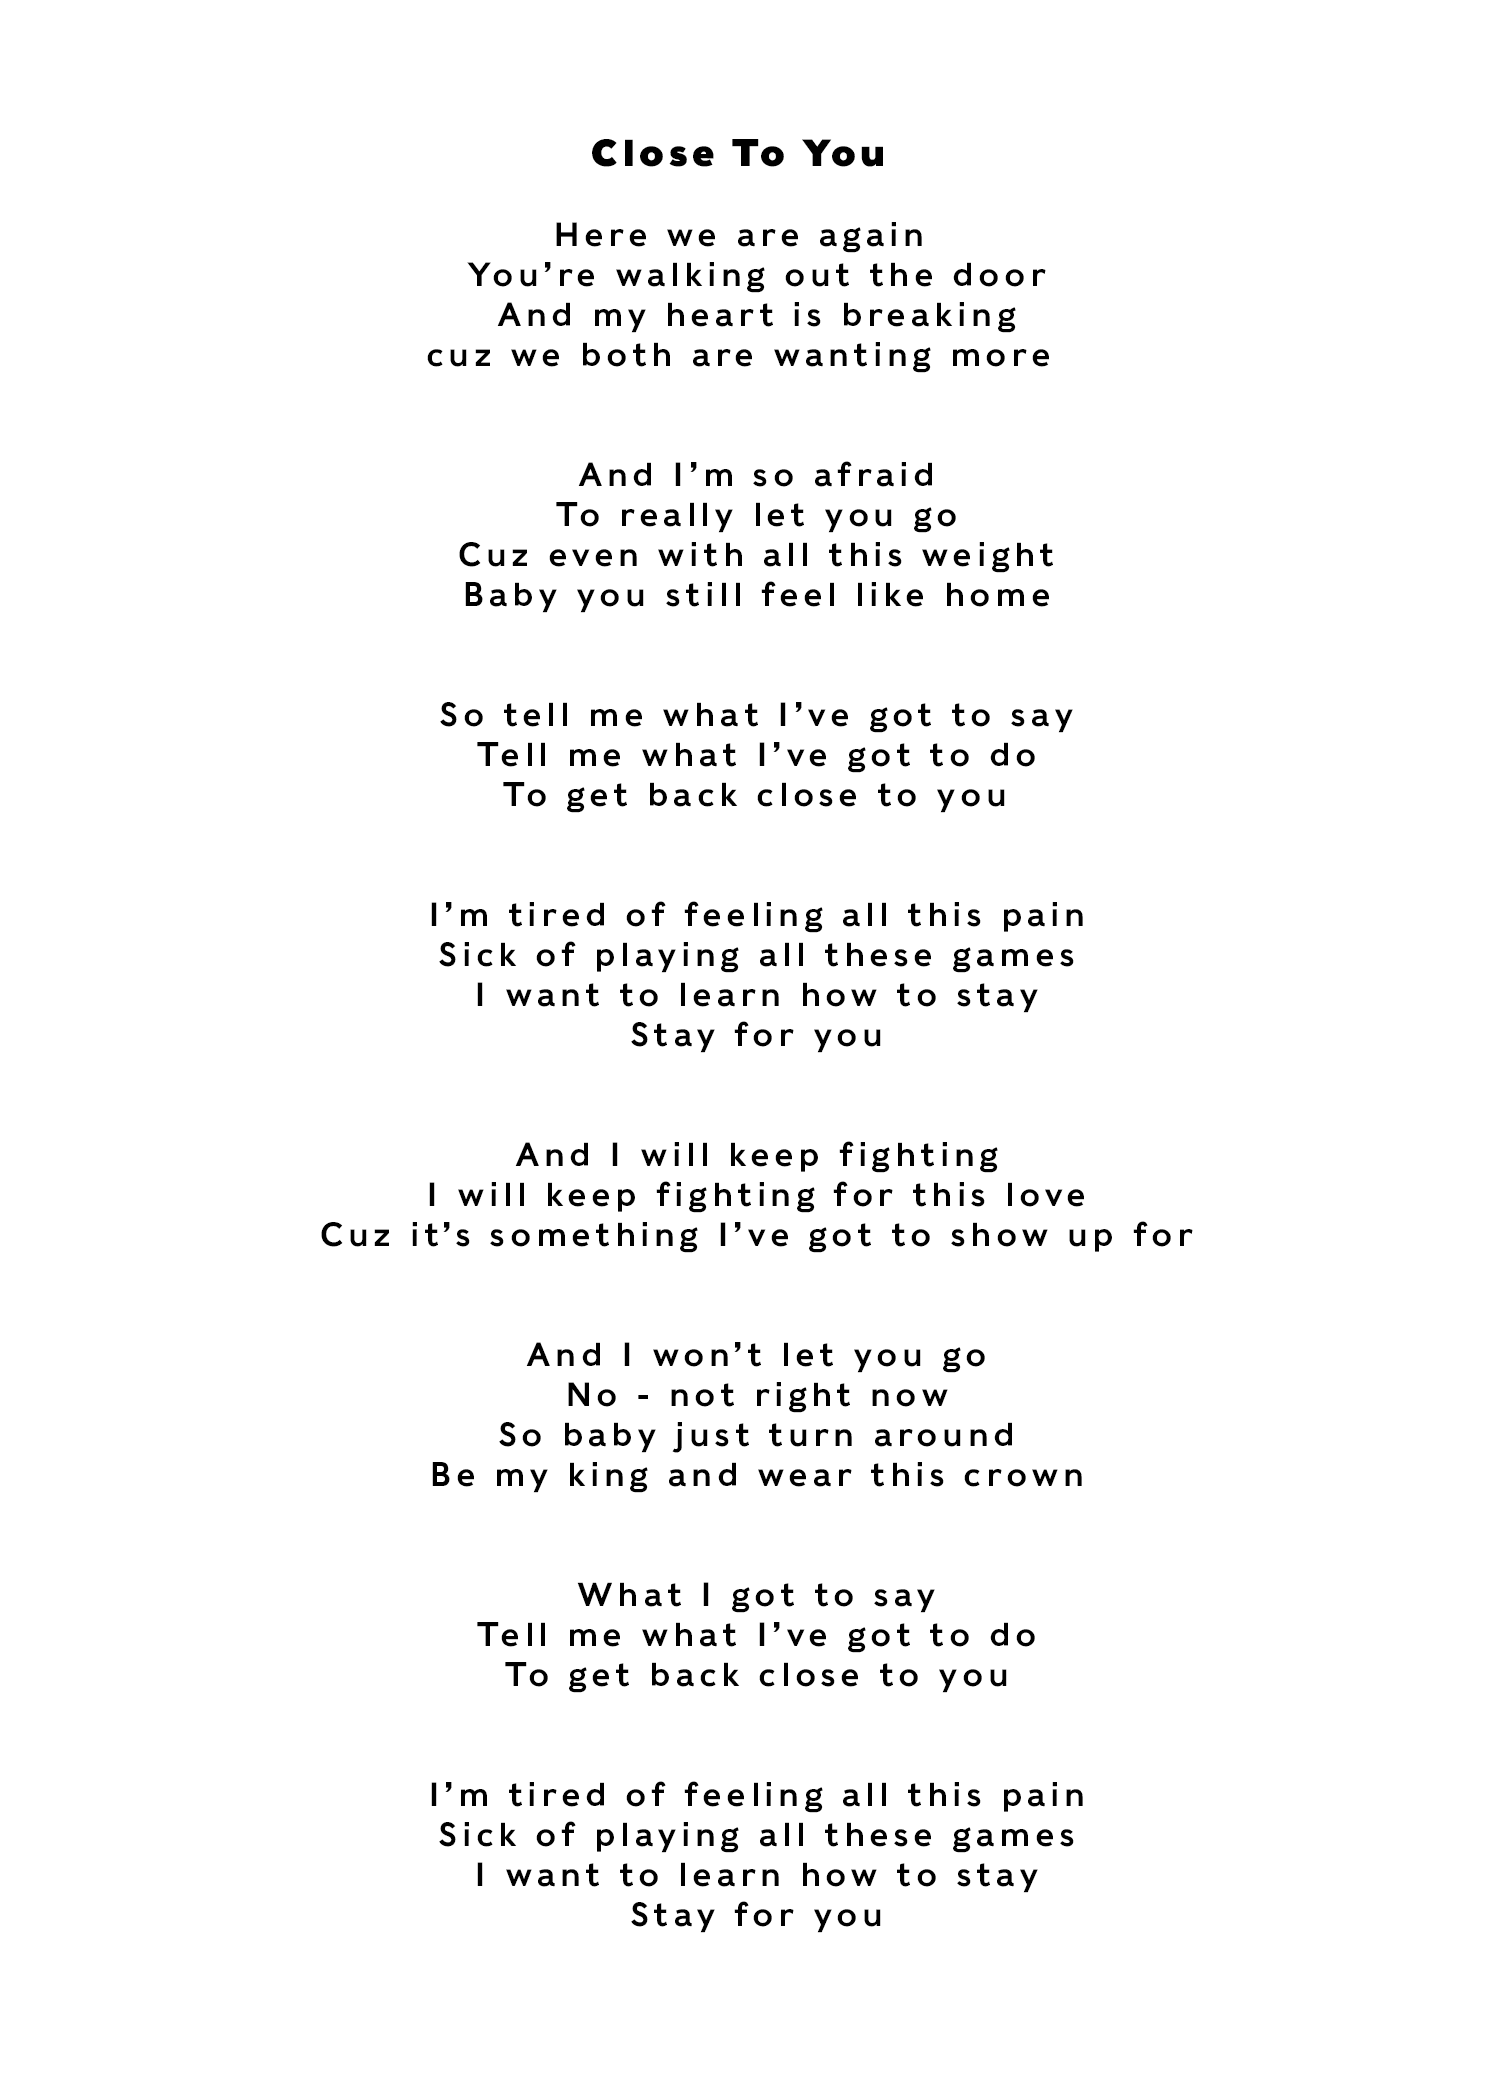 Close To You Lyrics.png